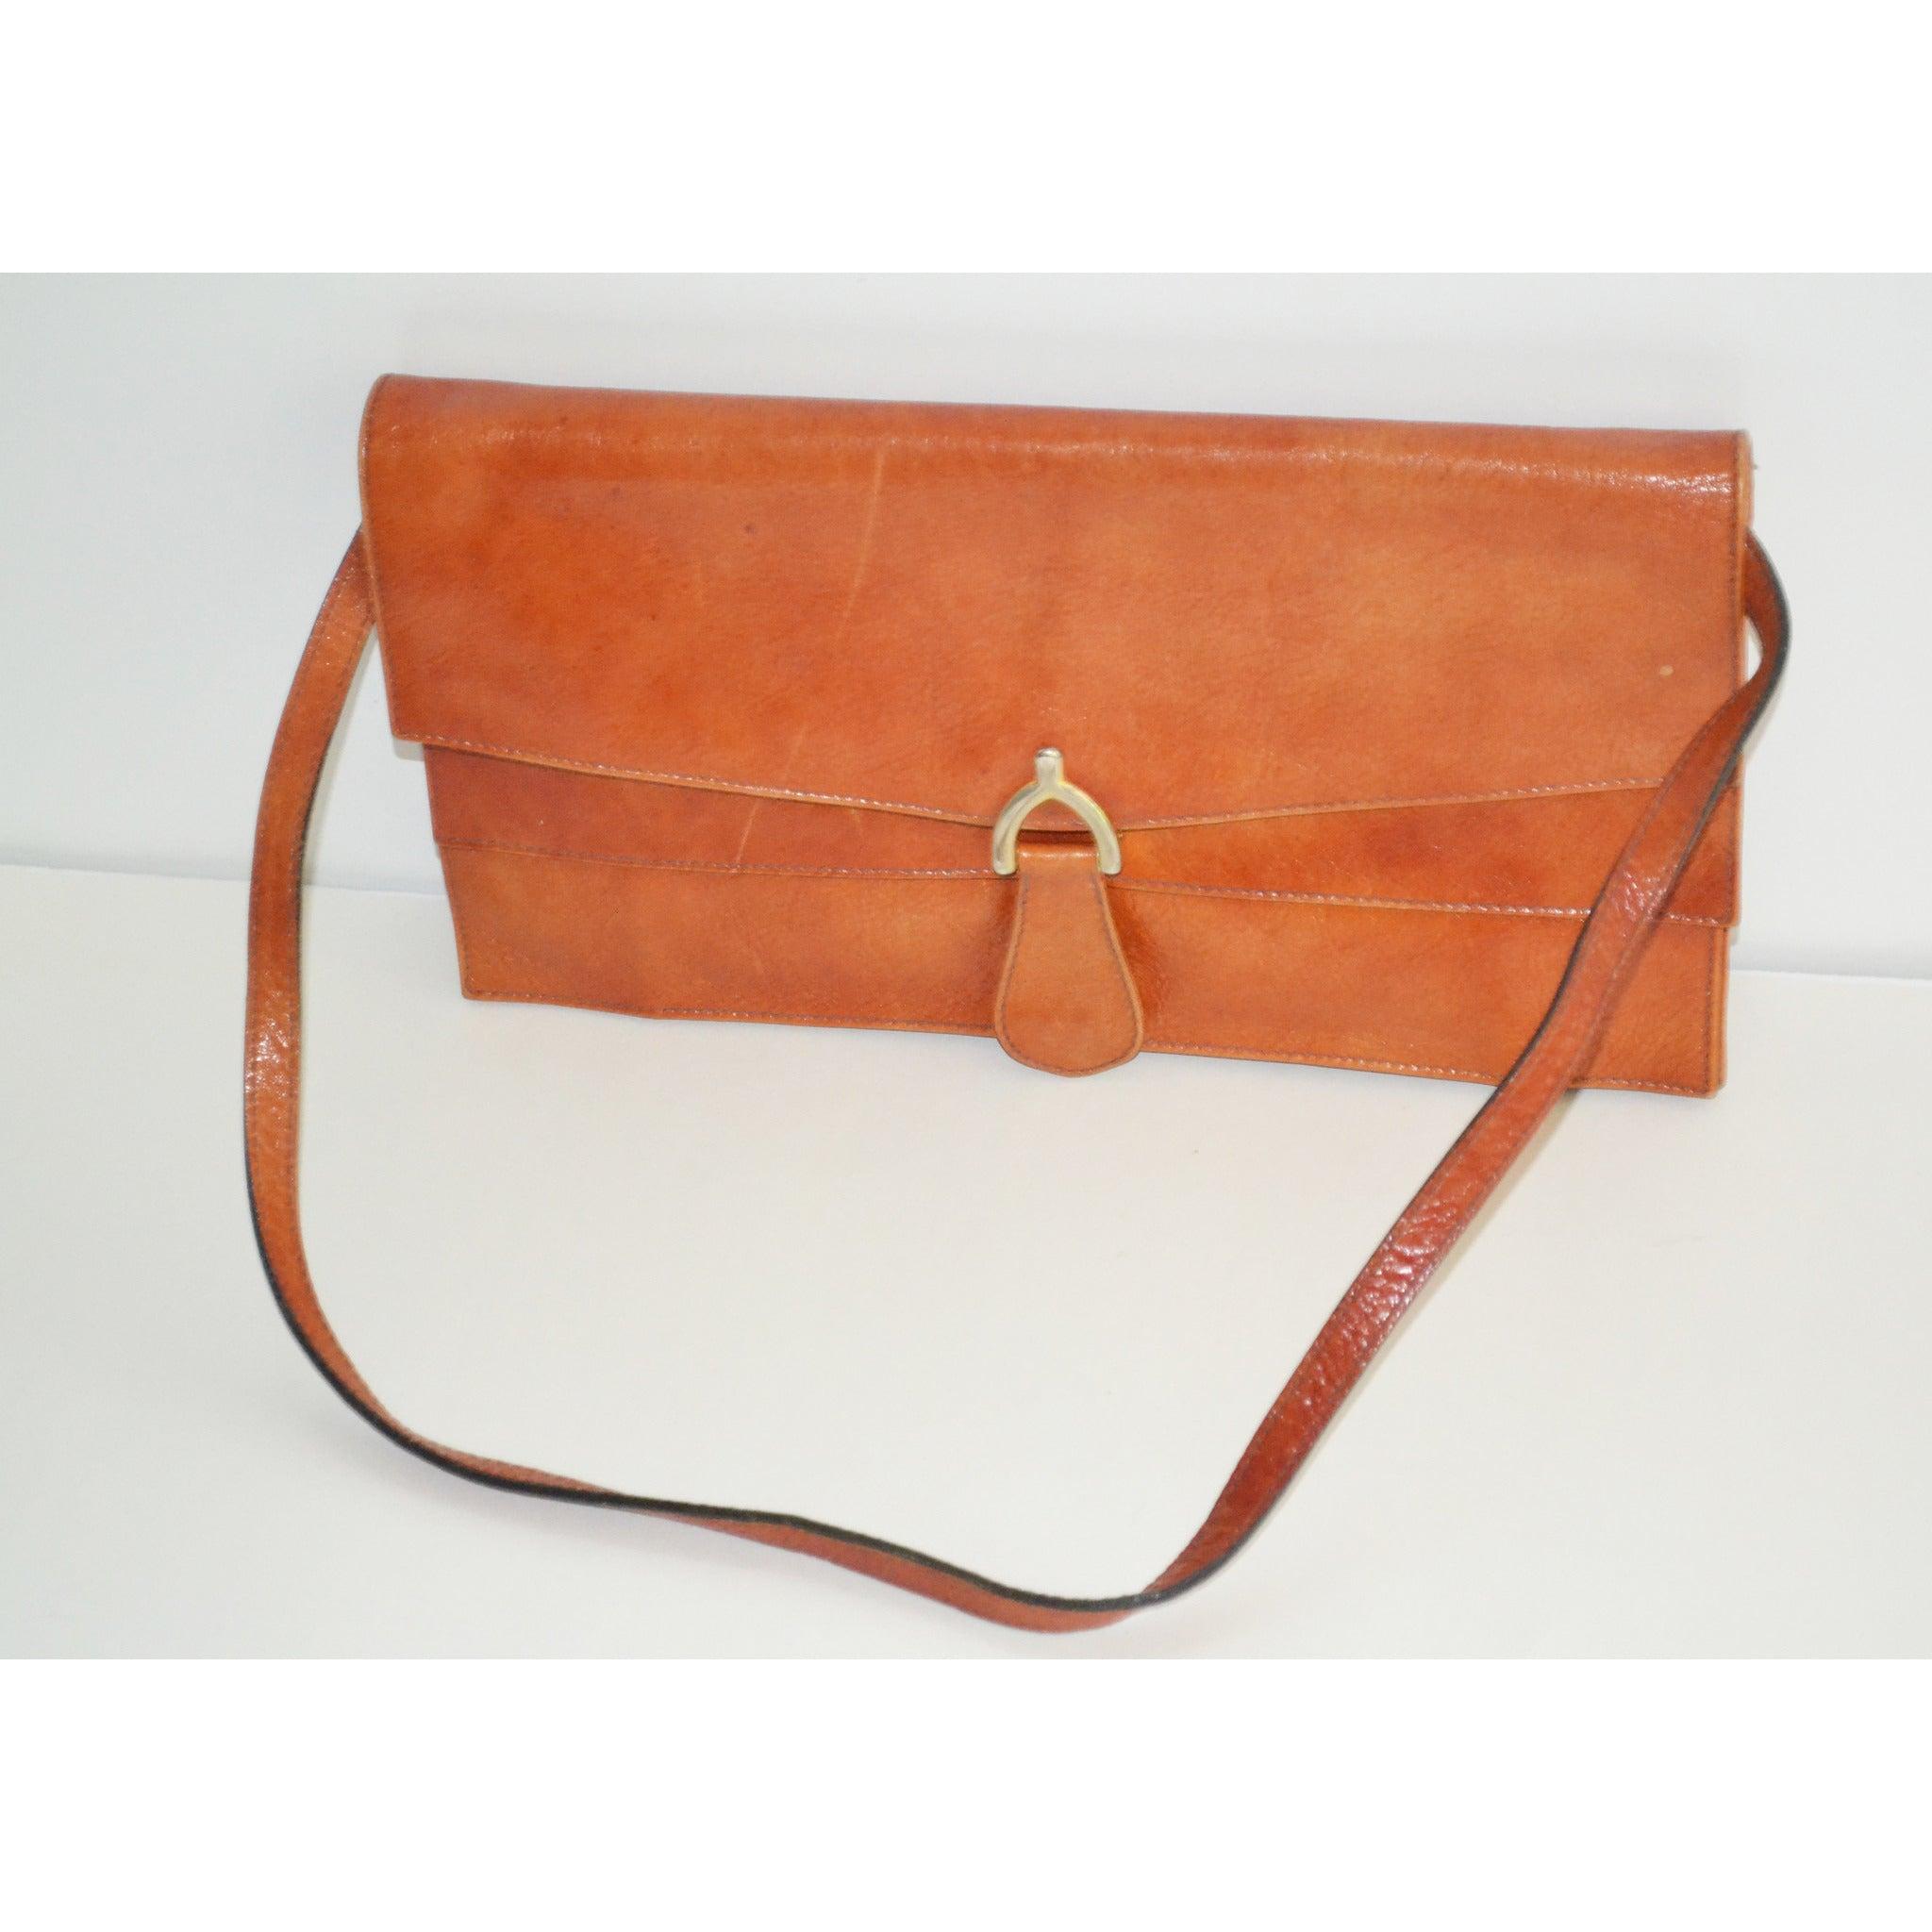 Vintage Orange Leather Flap Purse By Marshall Fields